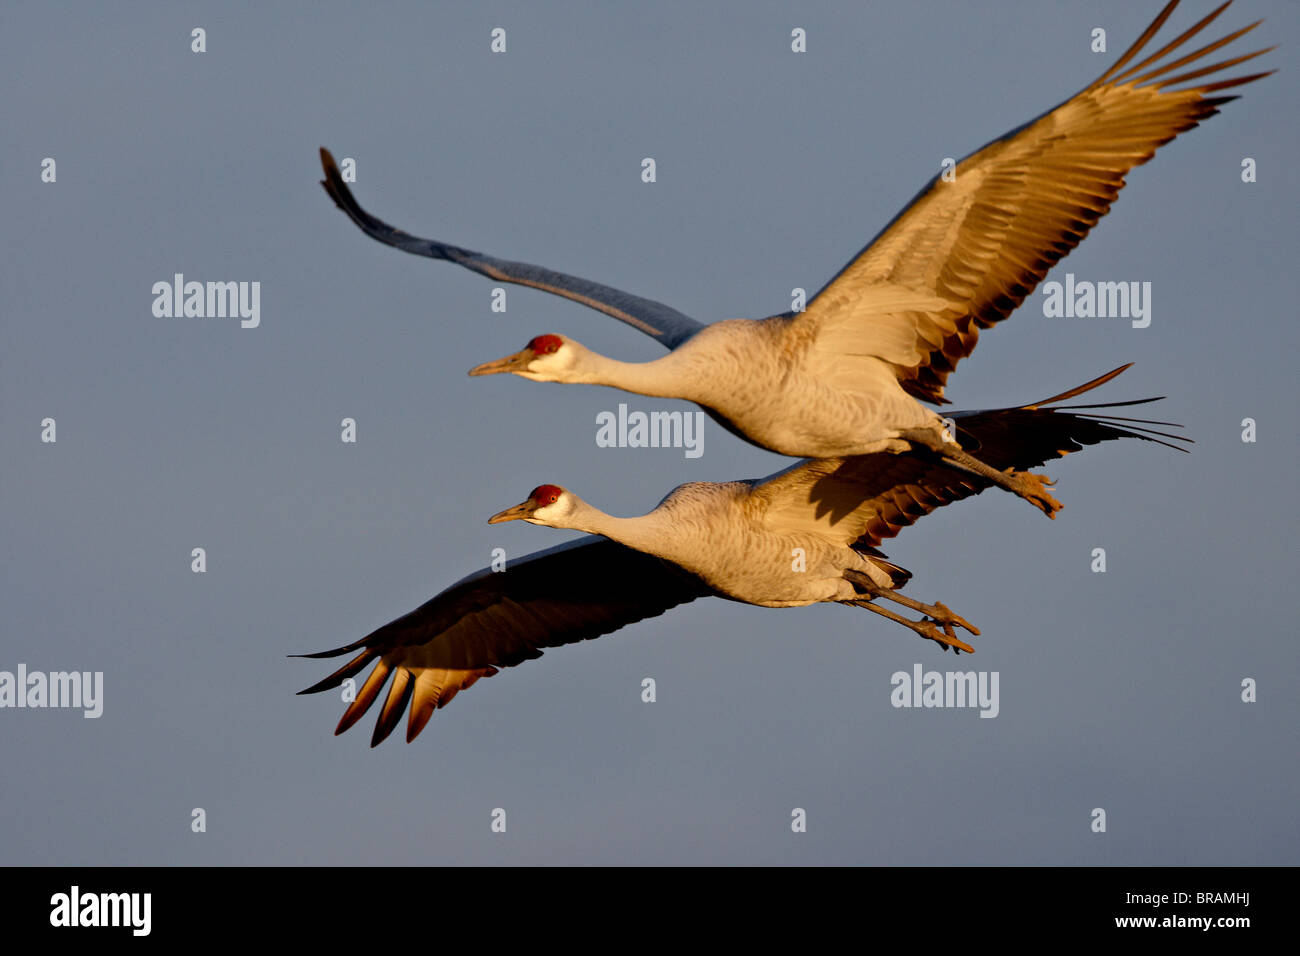 Two Sandhill Cranes in flight in late afternoon light, Bosque Del Apache National Wildlife Refuge, New Mexico, USA - Stock Image